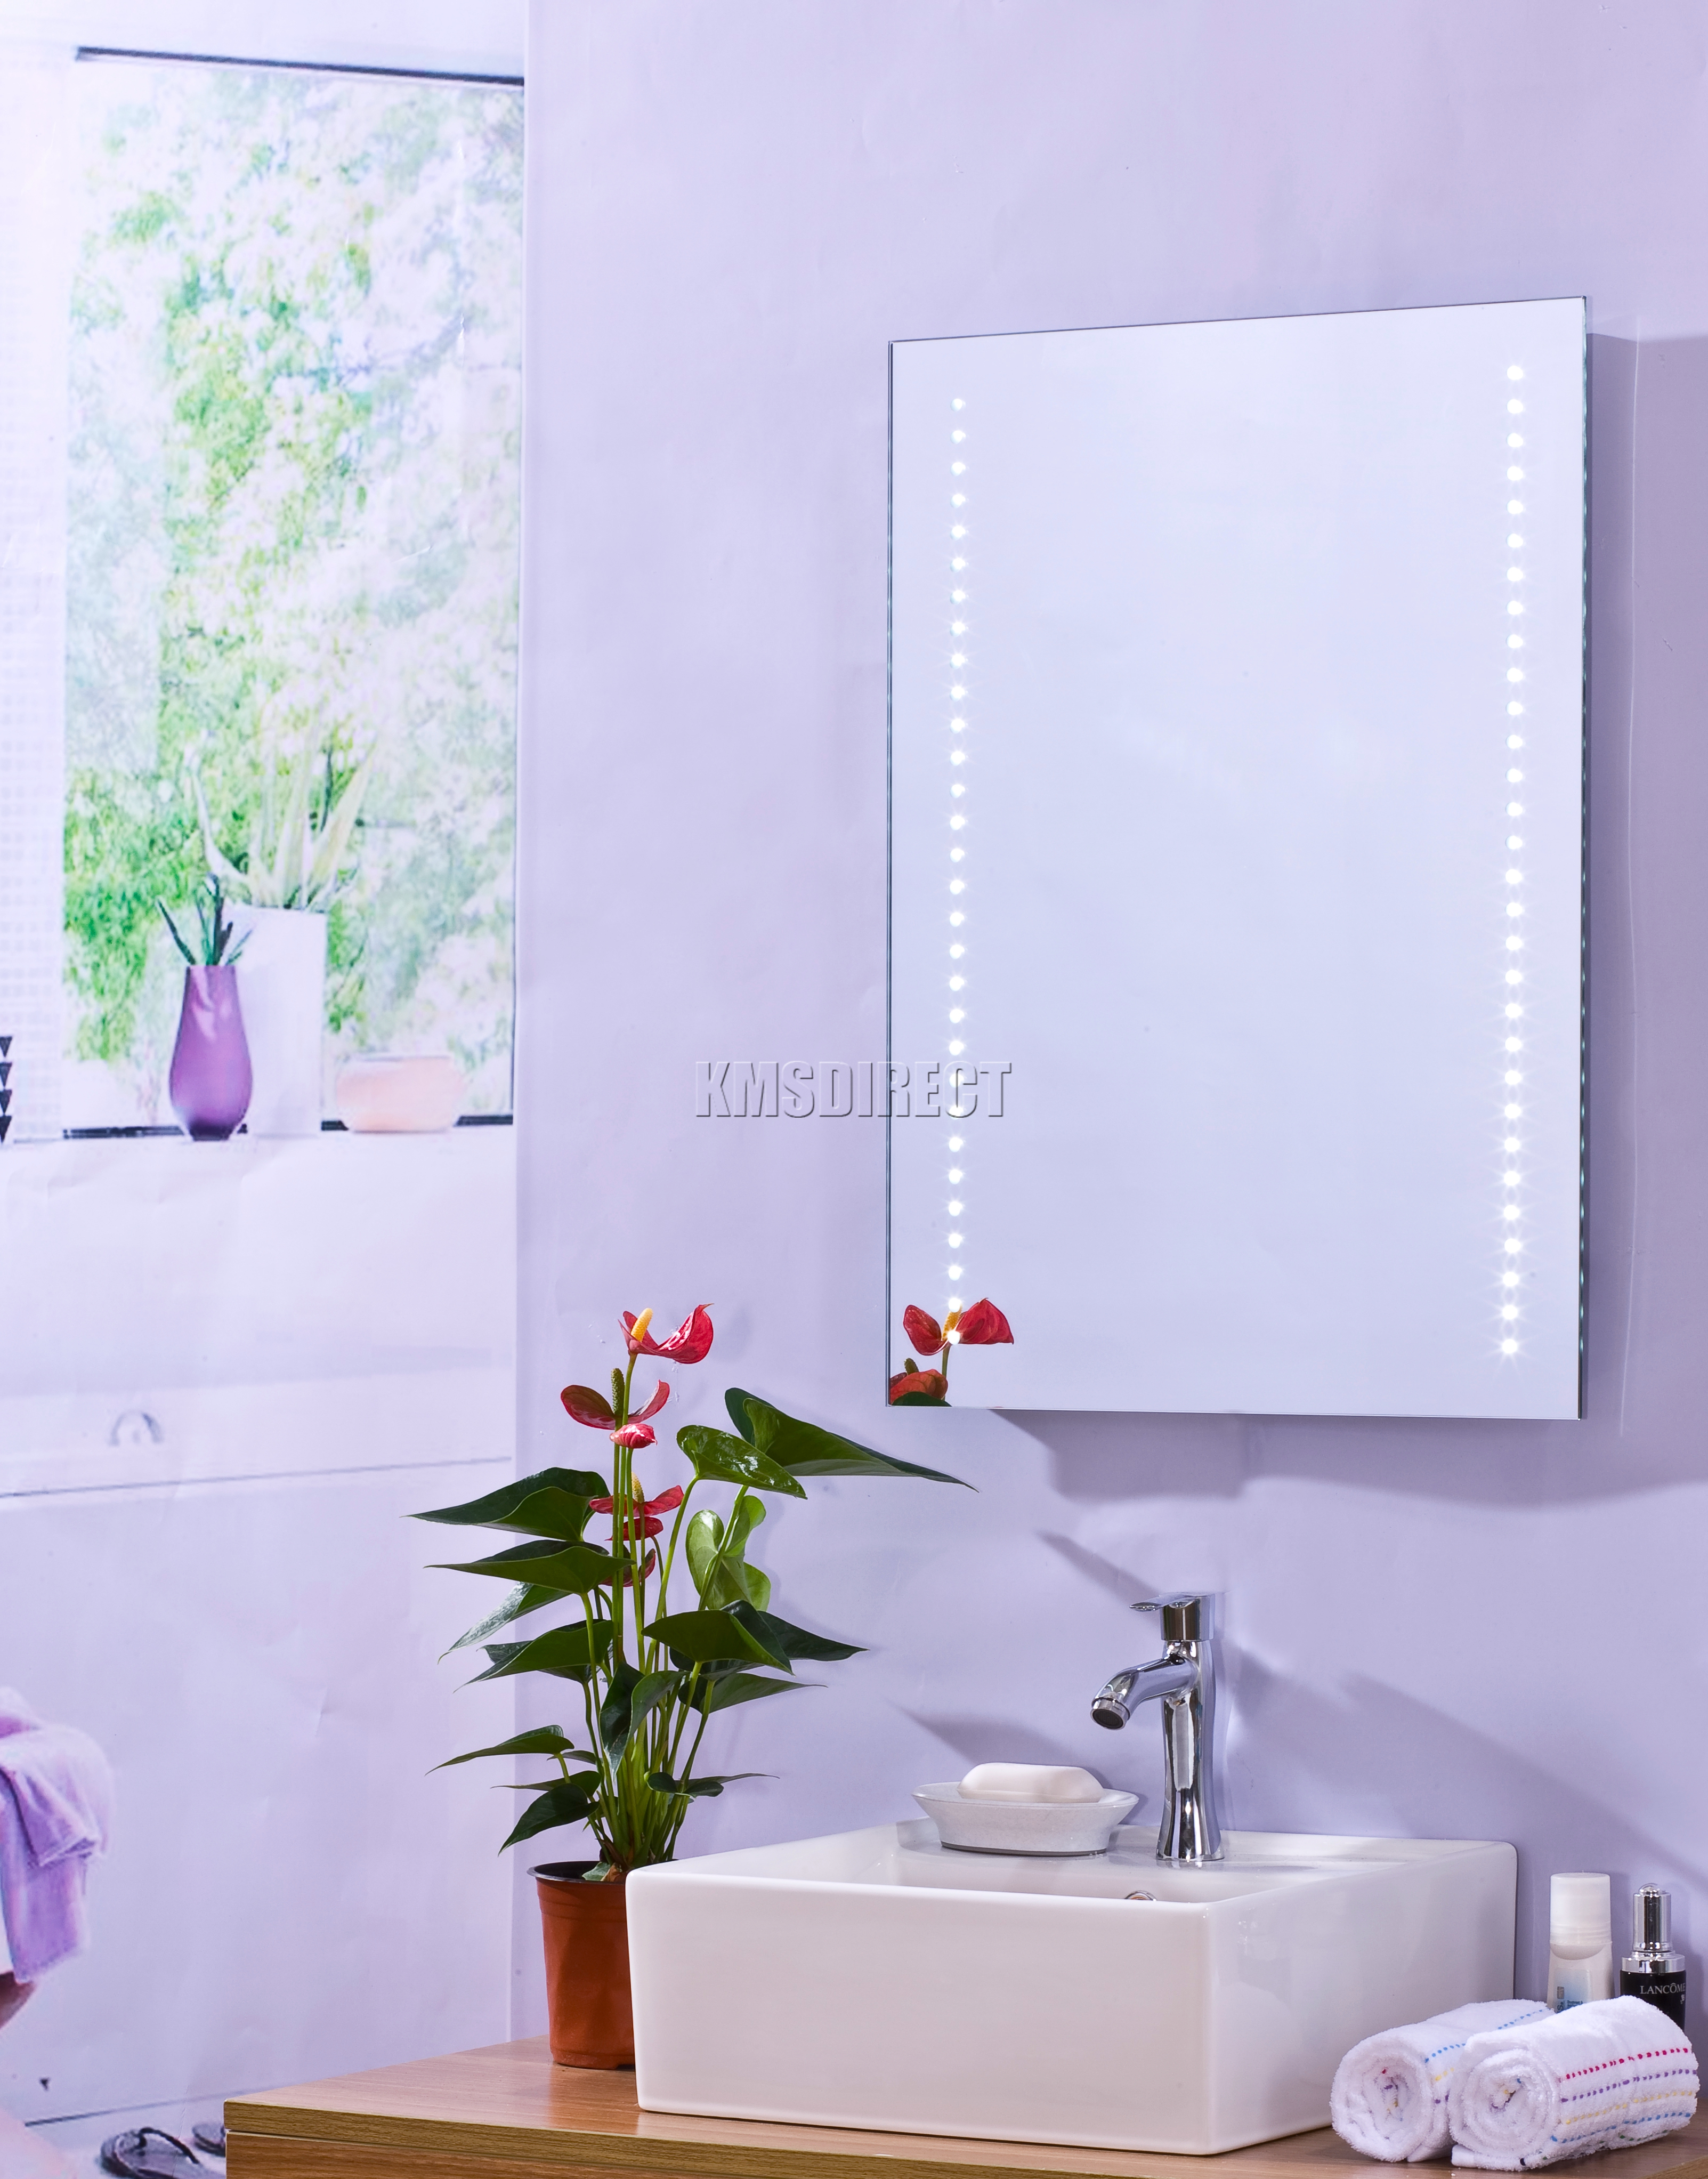 Sentinel FoxHunter Wall Mount LED Illuminated Bathroom Mirror Unit Light With Sensor MC09